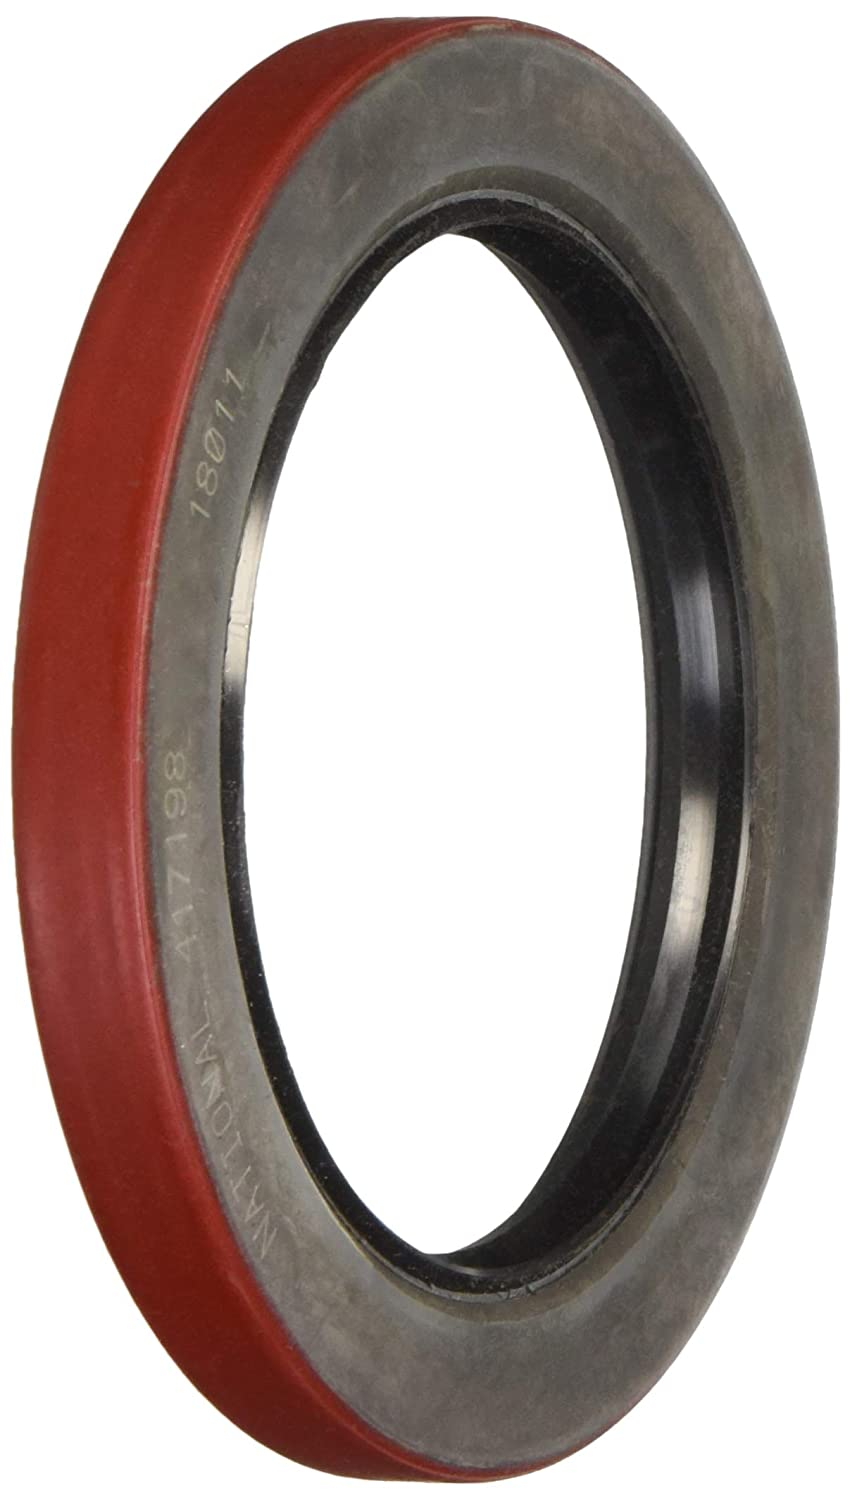 National 417198 Oil Seal